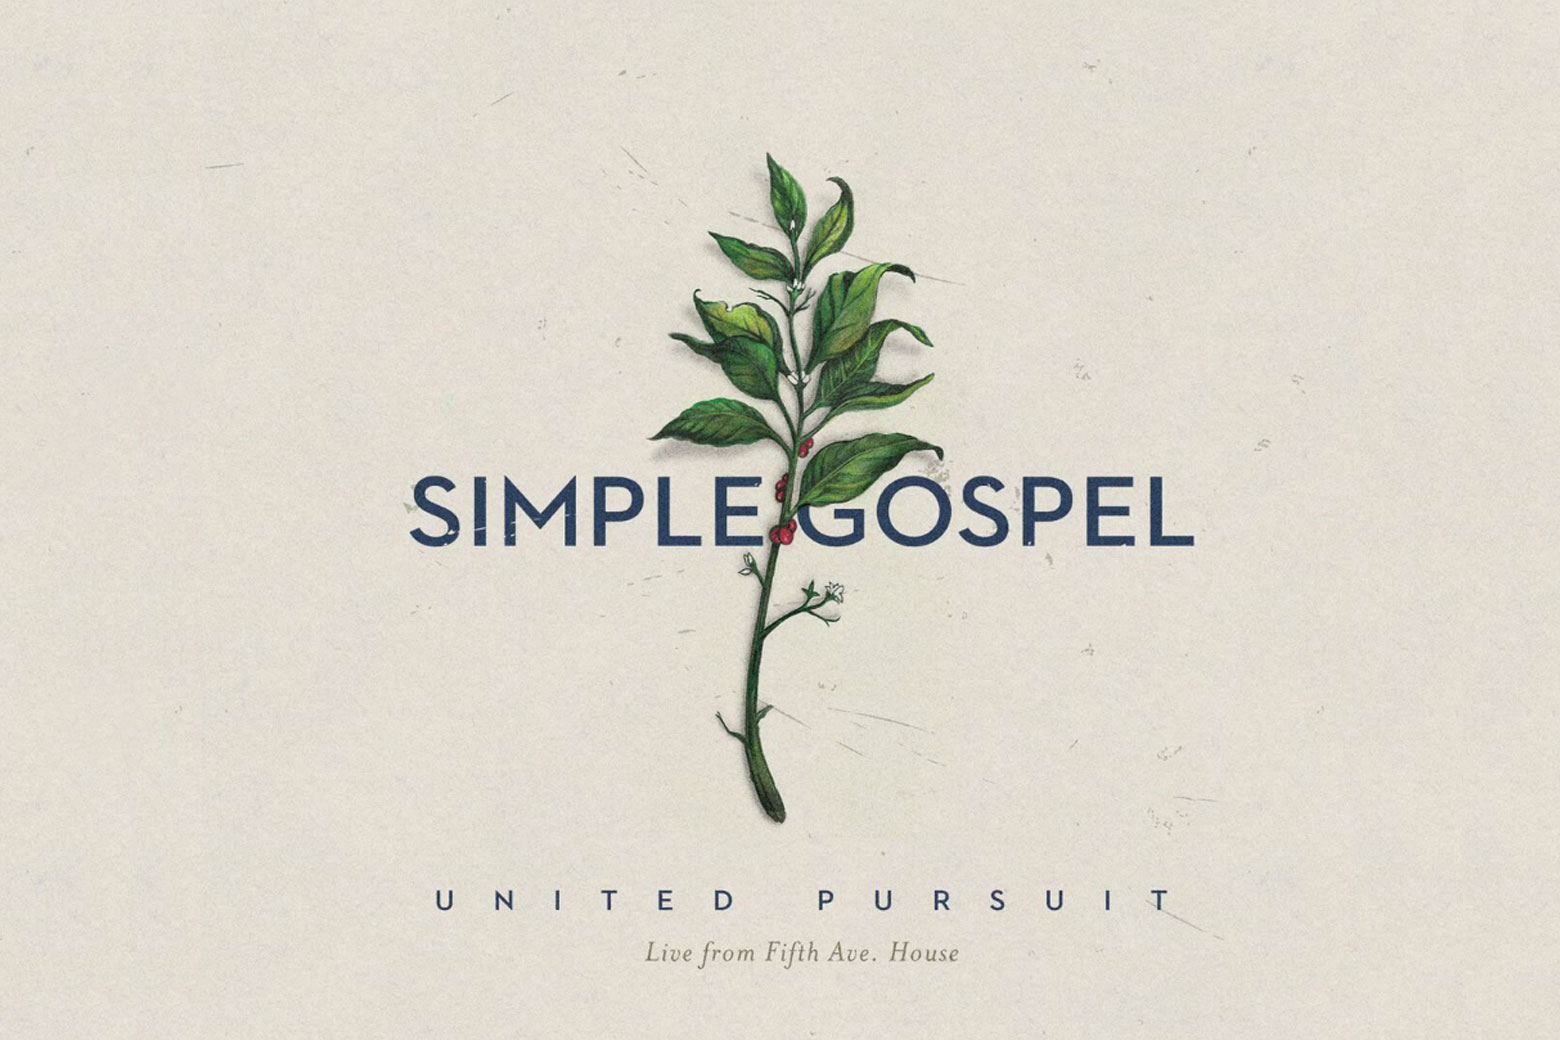 New Music: Simple Gospel by United Pursuit